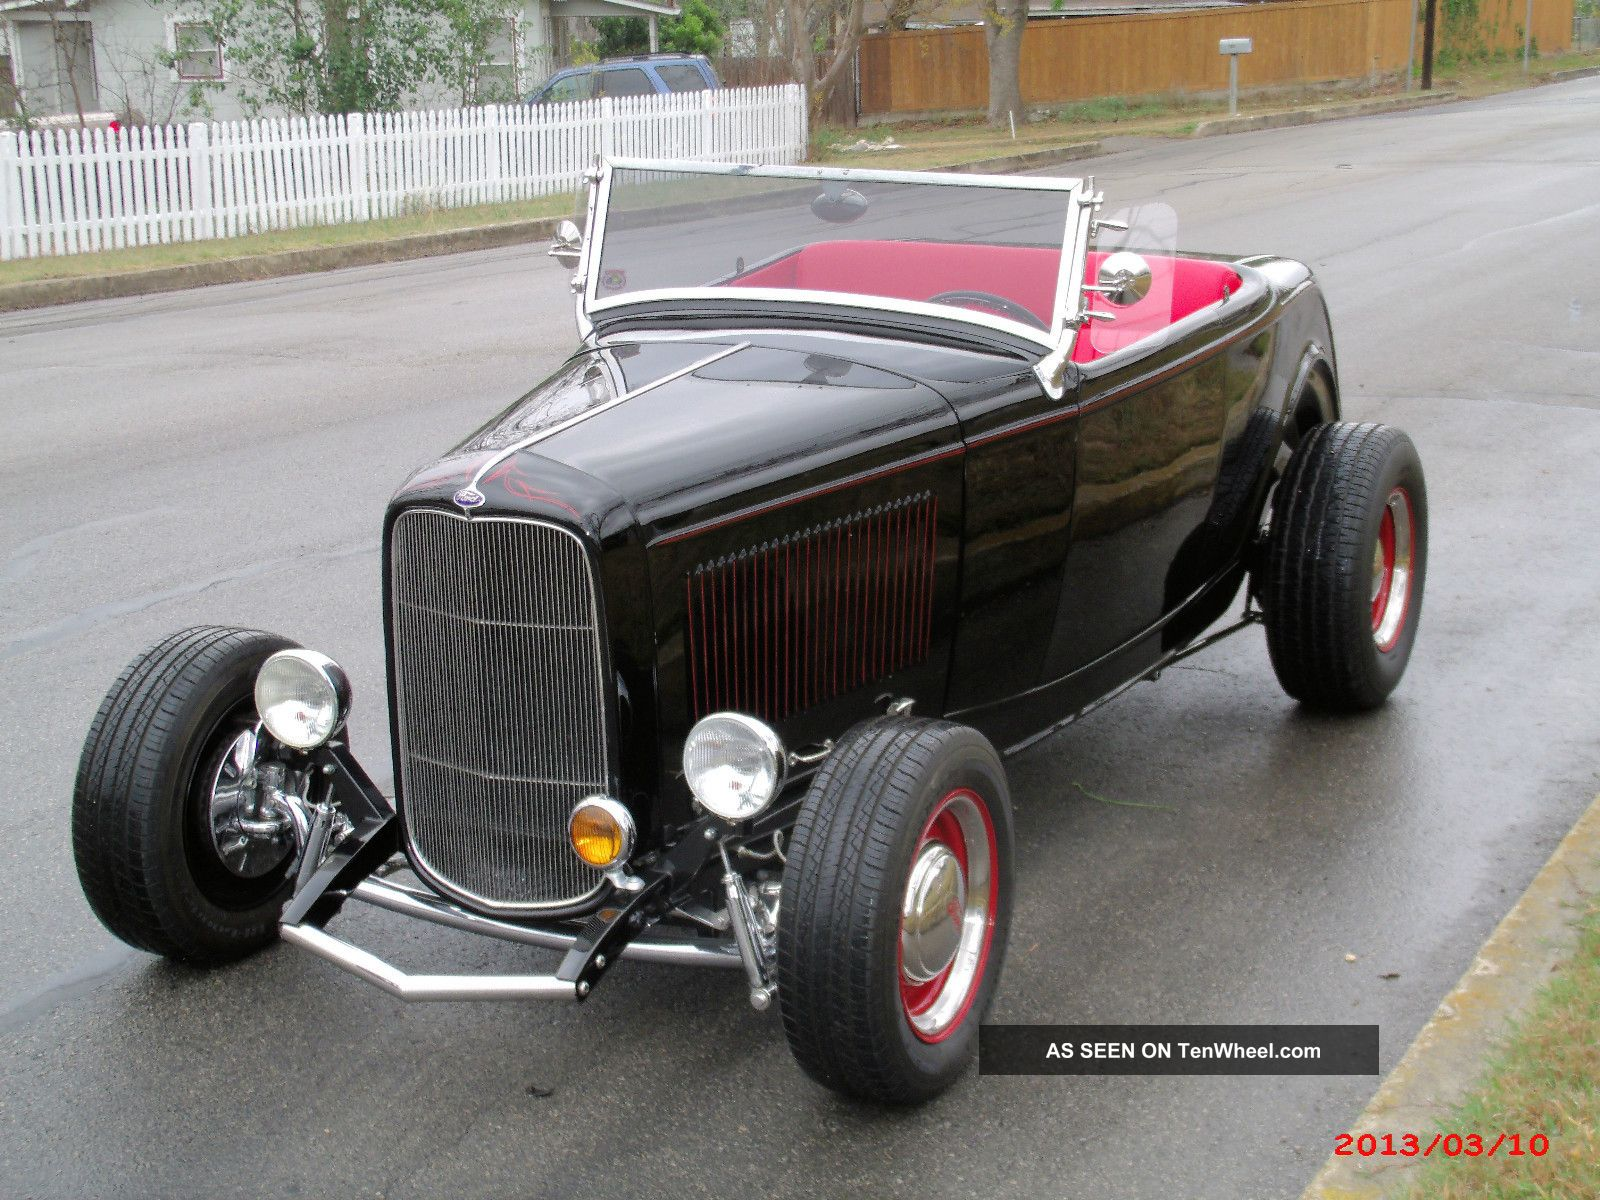 1932 Chevrolet Cars for Sale  Used Cars on Oodle Classifieds